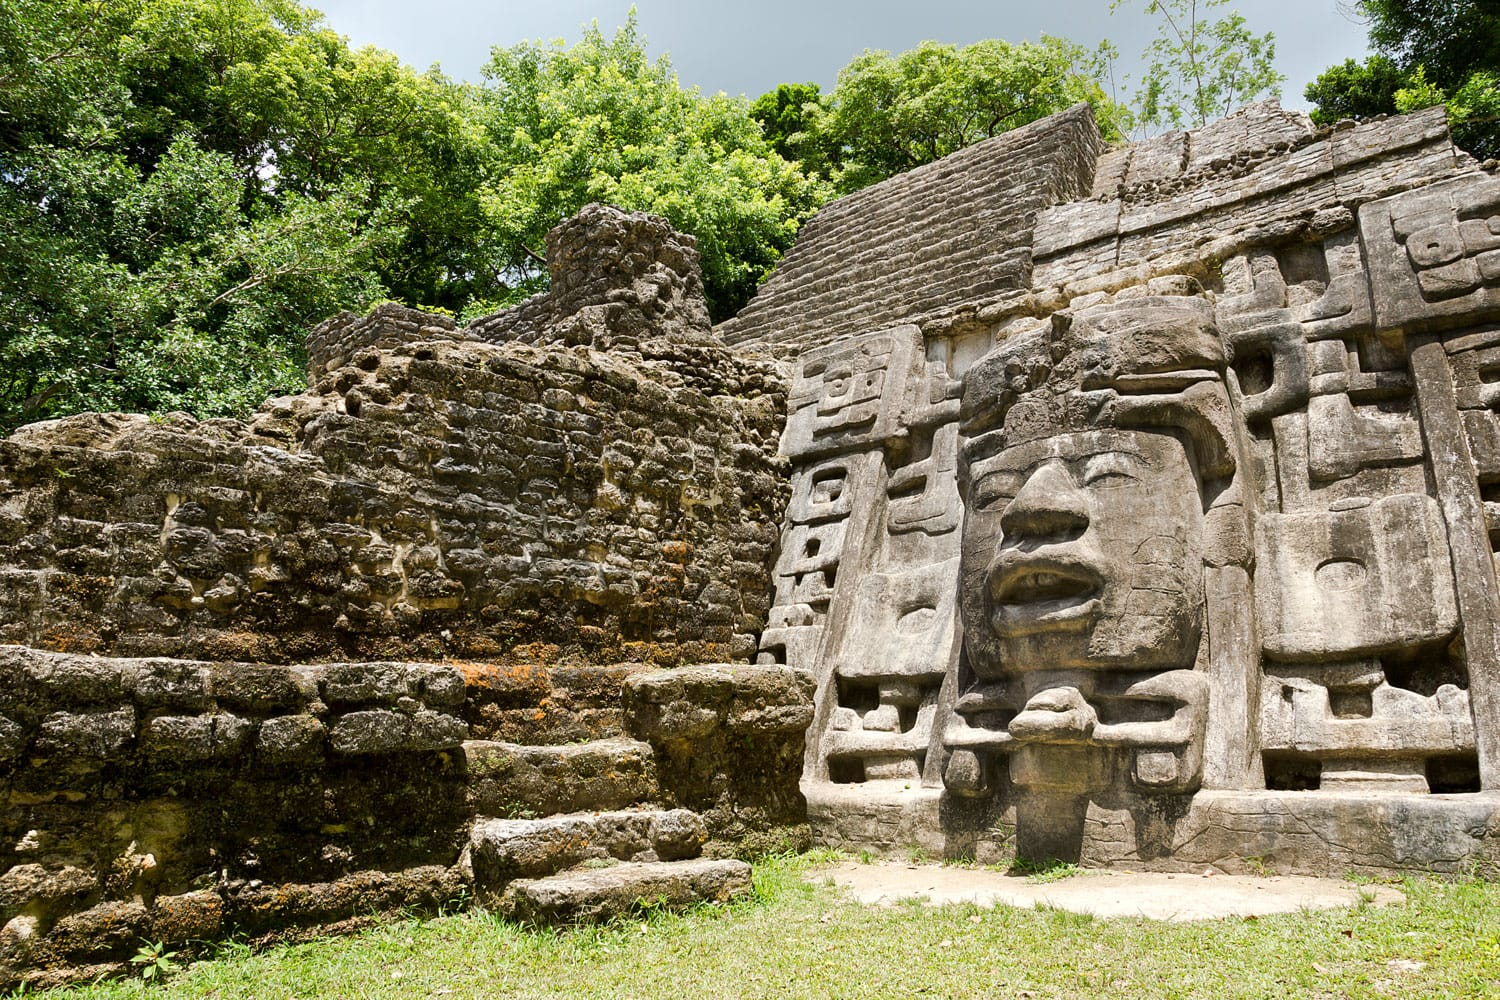 Ancient Maya Mask Temple located in the jungle of Belize.